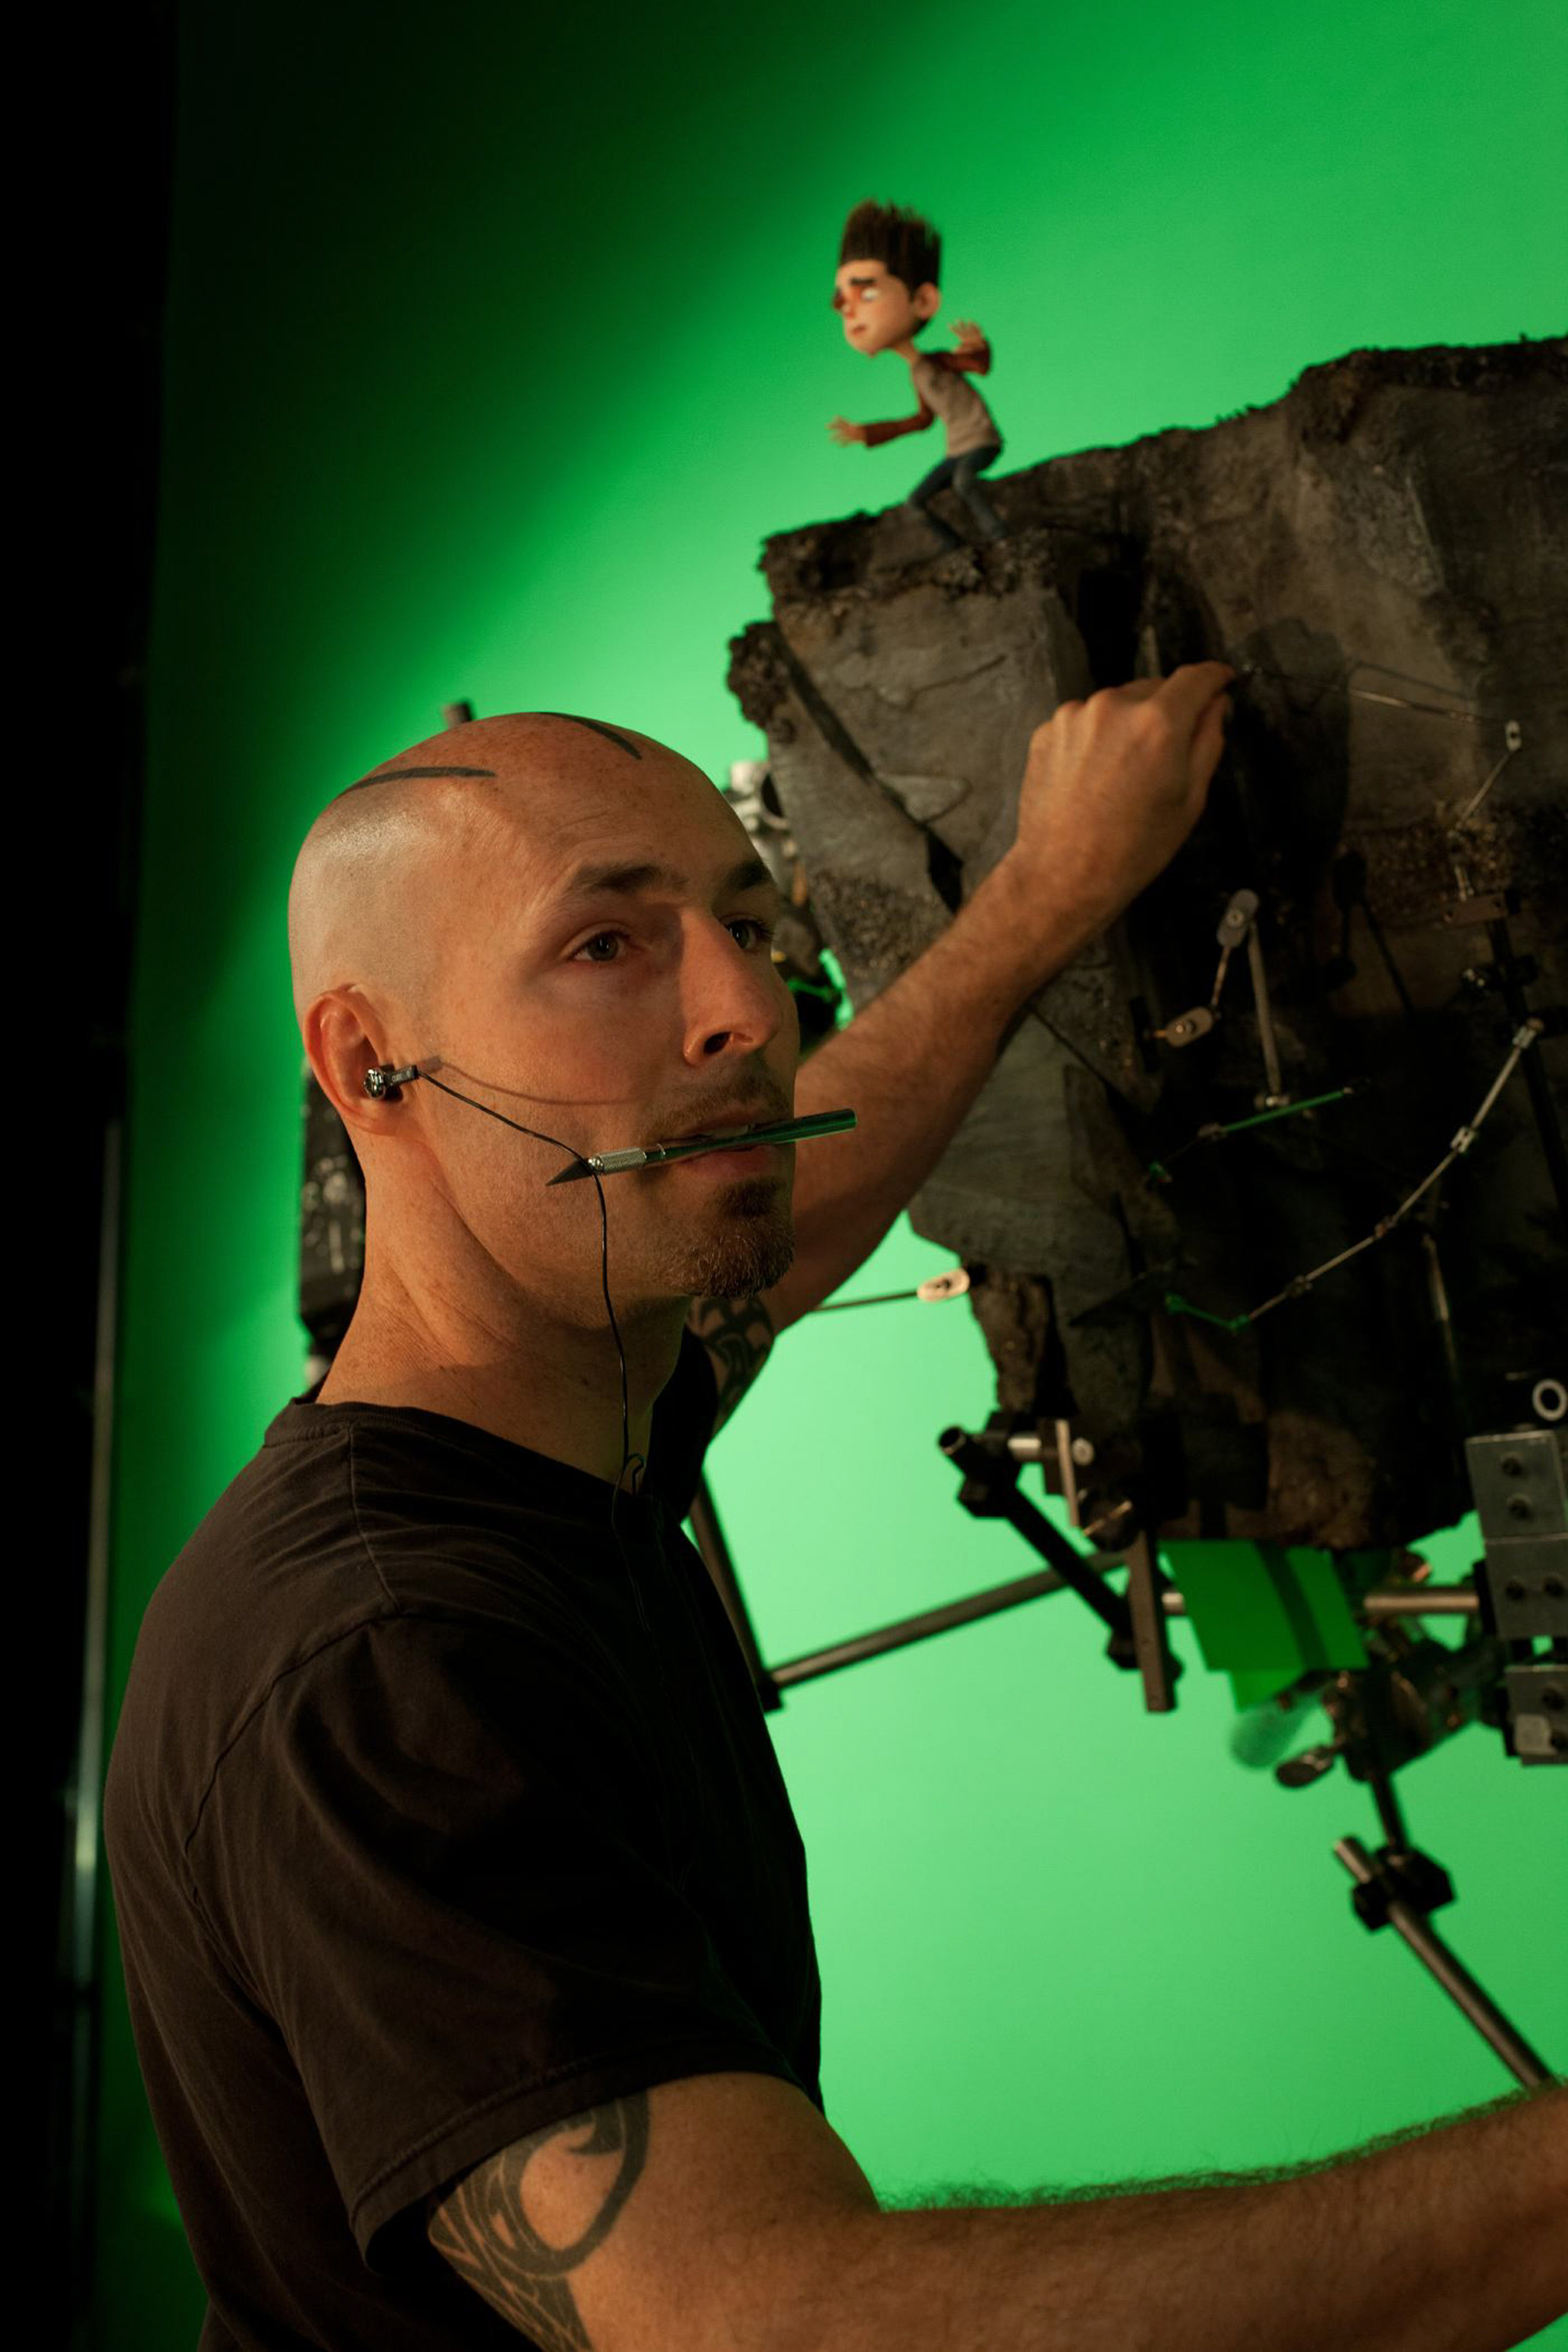 Animator Justin Rausch helps put Norman in a dangerous situation for ParaNorman, the new 3D stop-motion comedy thriller.  Credit: LAIKA, Inc.